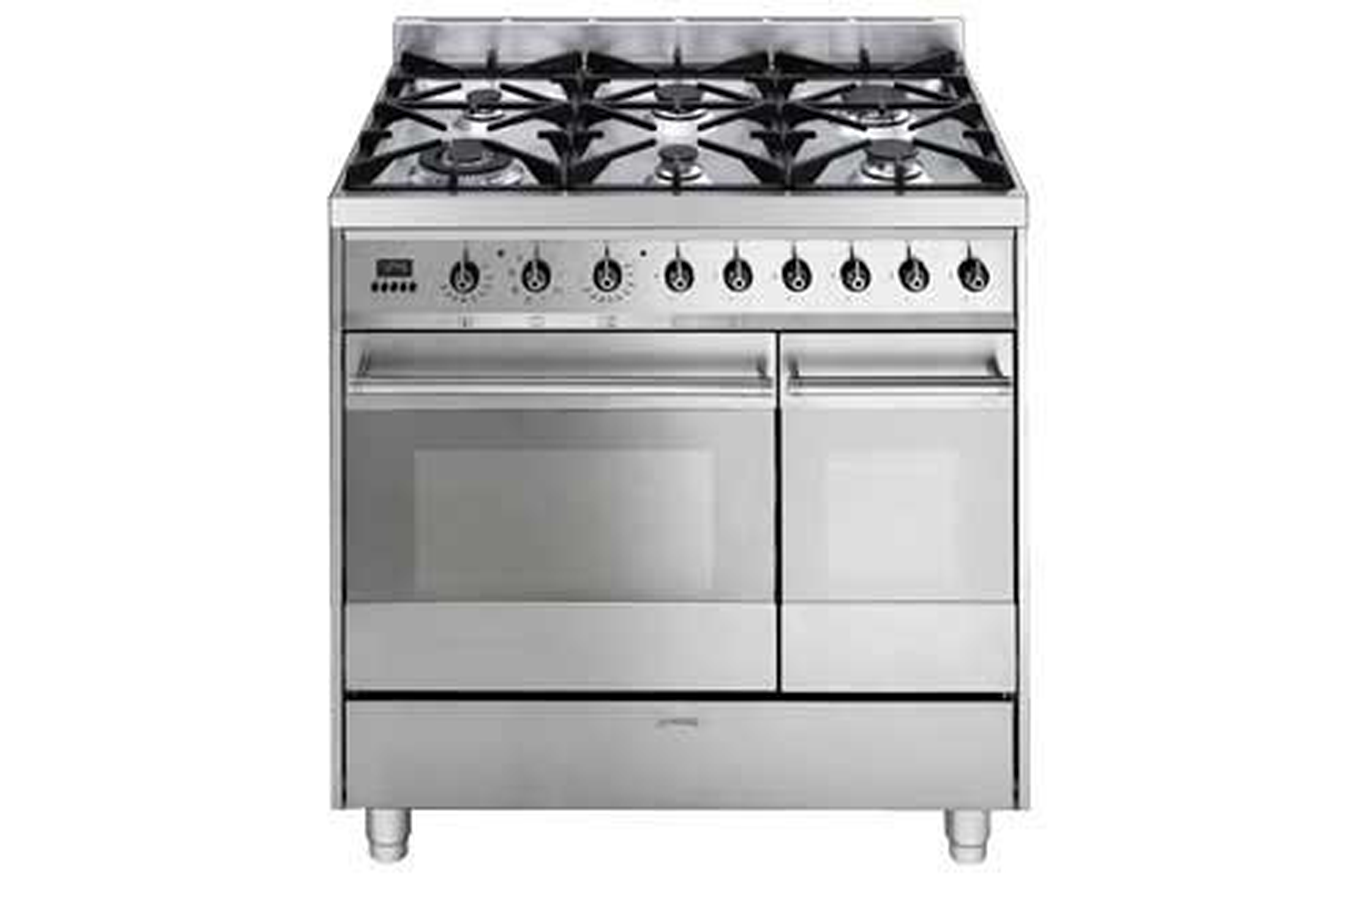 Piano de cuisson smeg c92gmx8 inox 3440508 darty for Piano de cuisine smeg